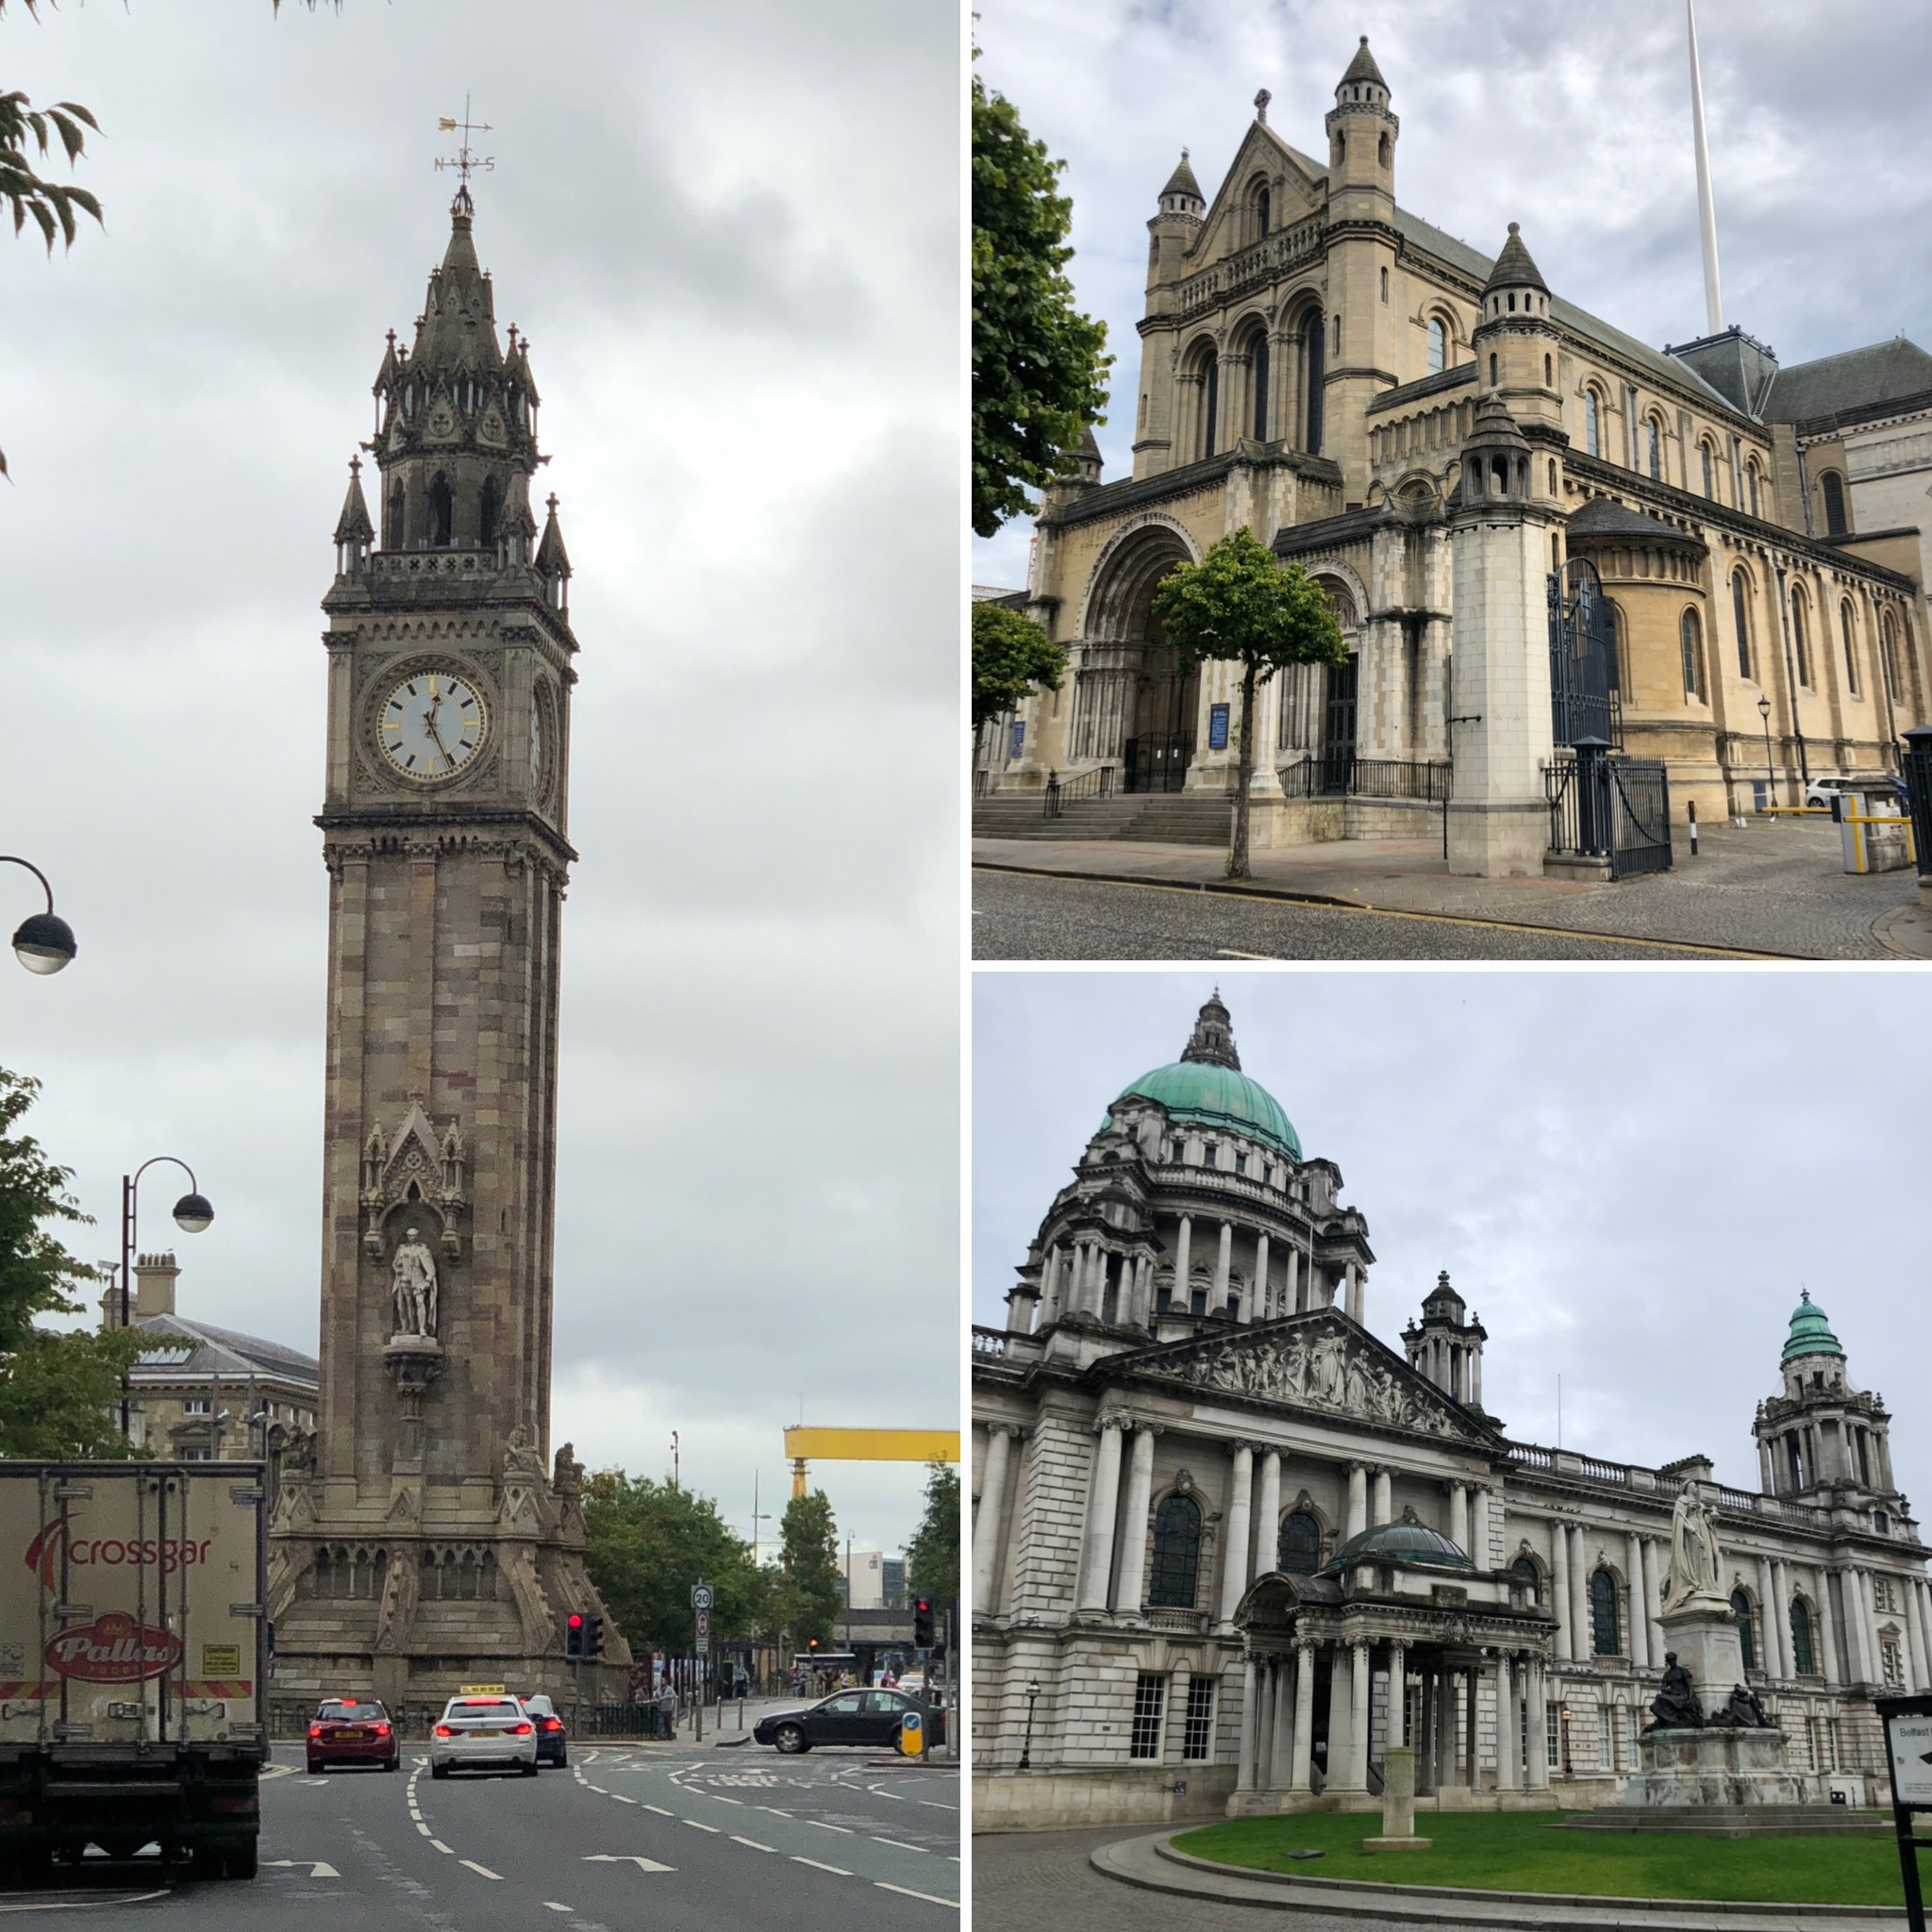 Albert Memorial Clock (Yes, It Really Is Leaning Over), St Annes Cathedral And Belfast City Hall